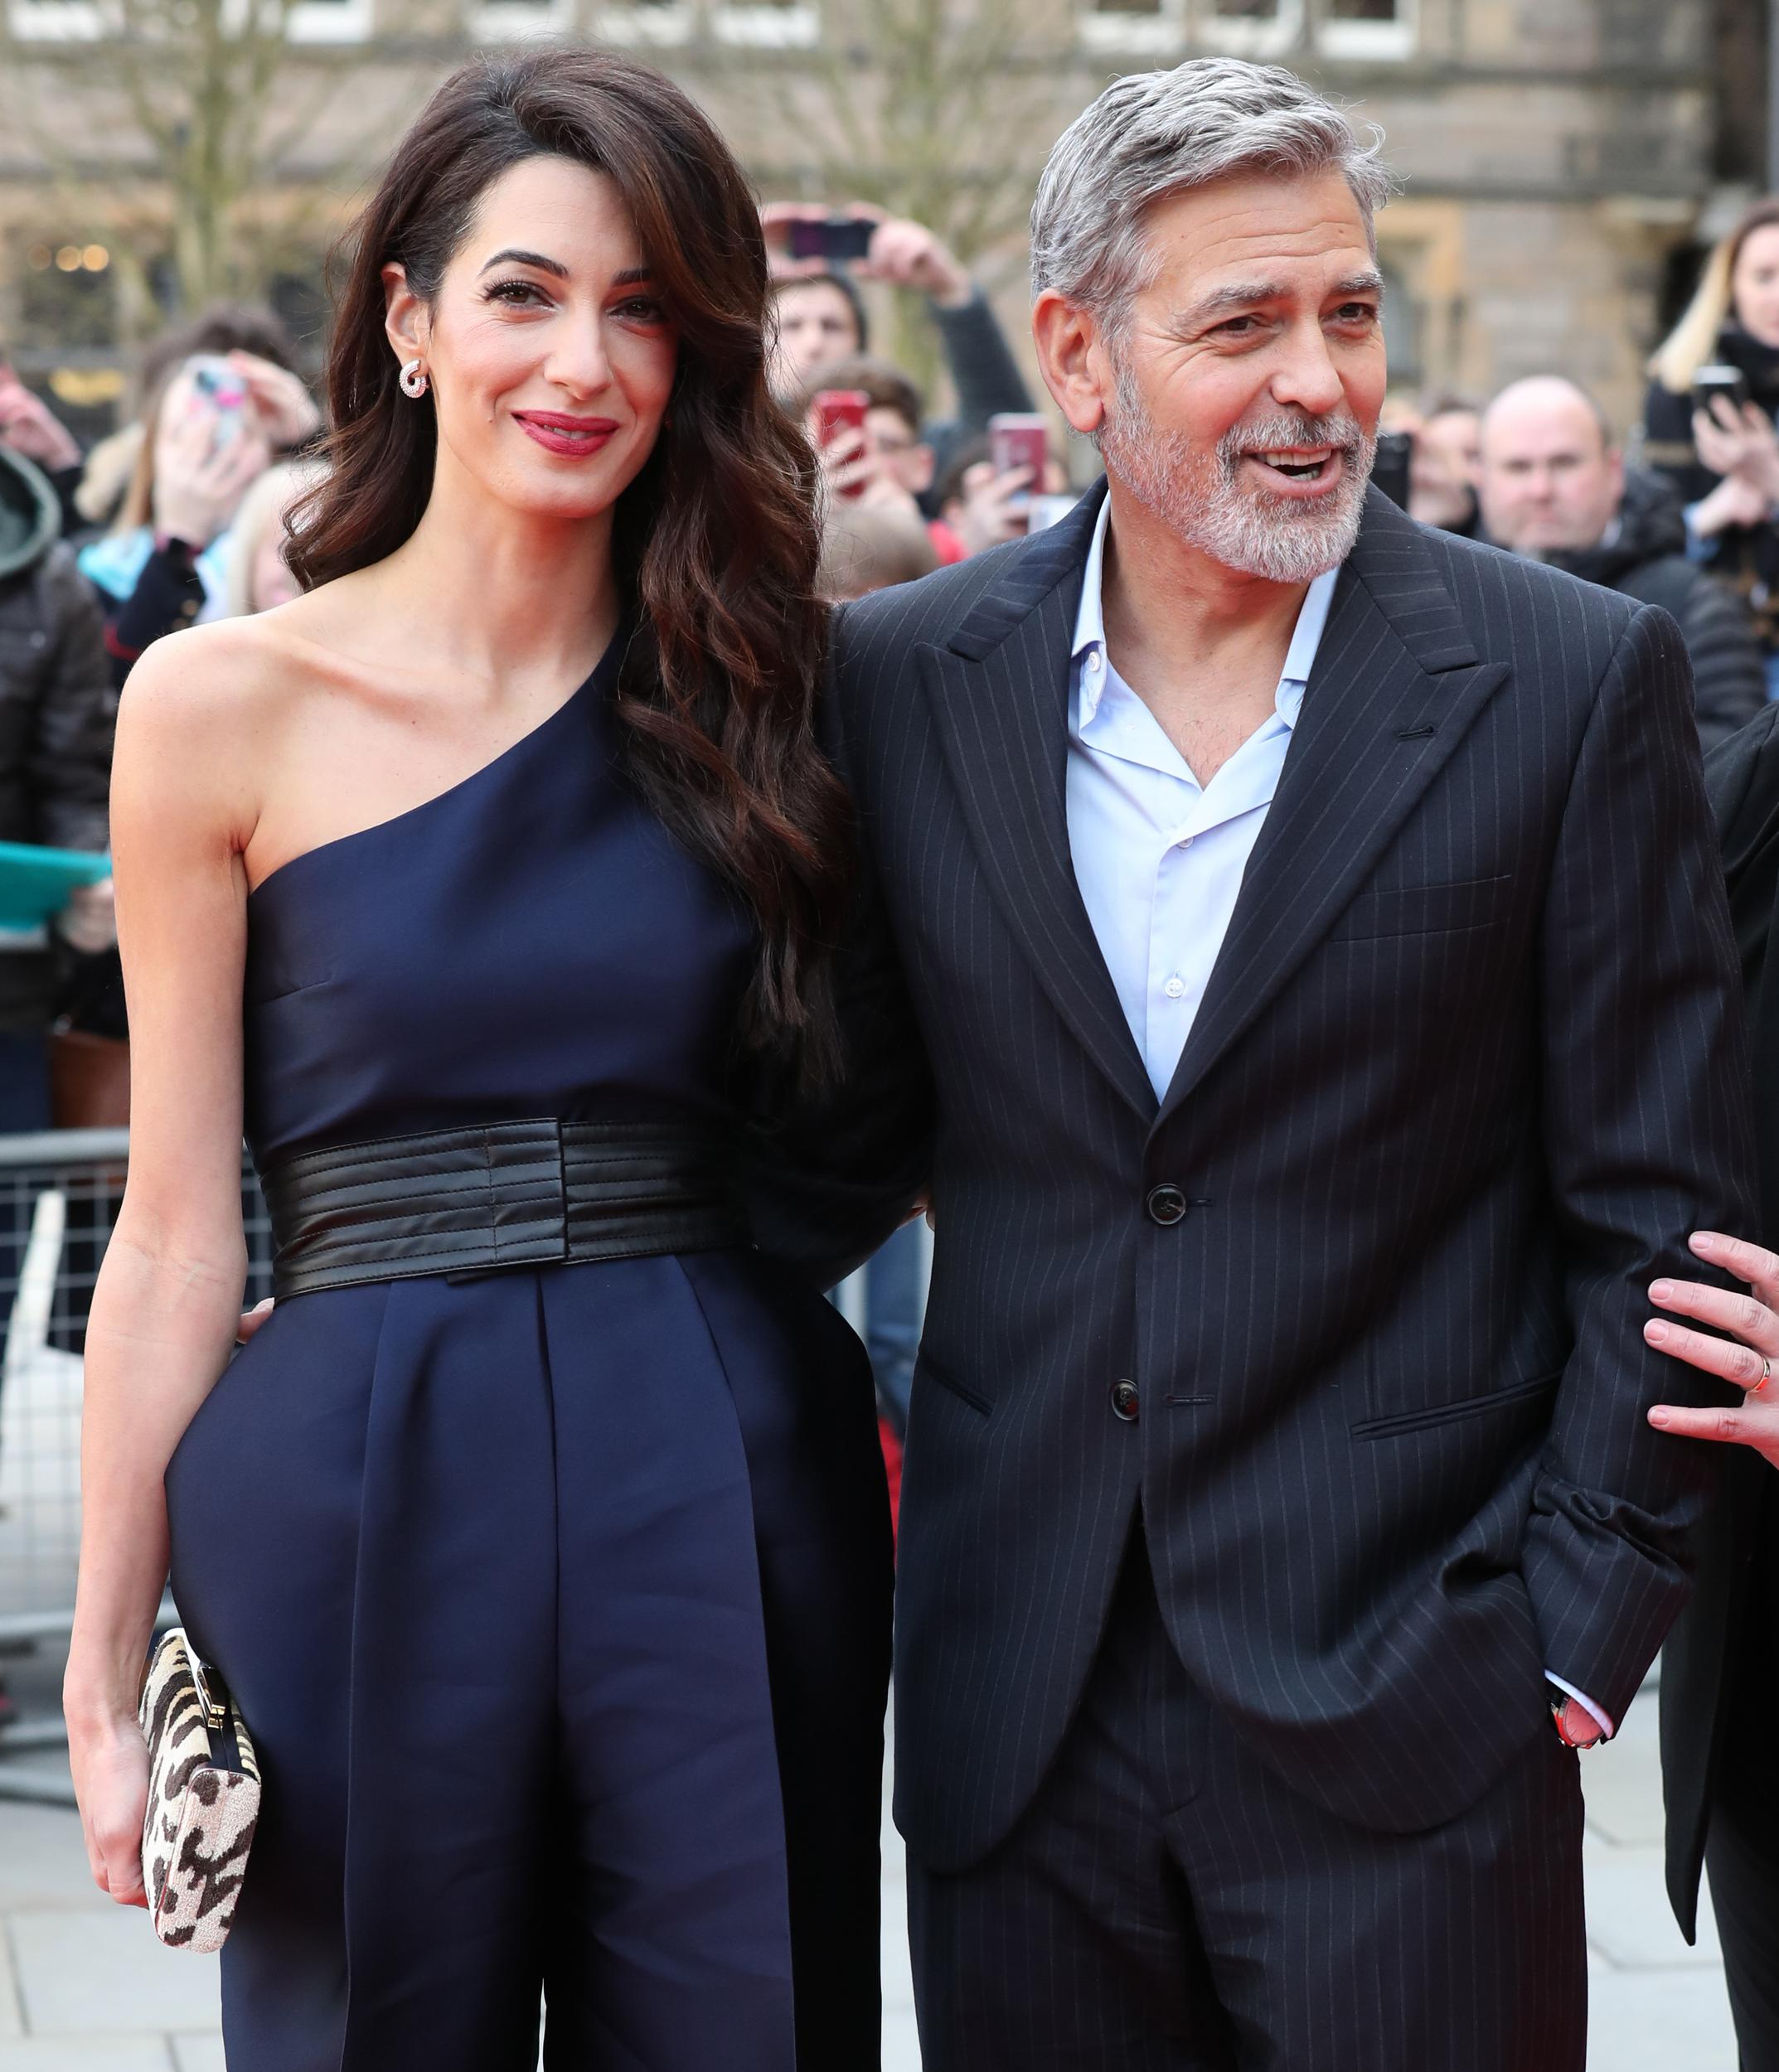 George and Amal Clooney, representing the Clooney Foundation for Justice, arrive at the People's Postcode Lottery charity gala at the McEwan Hall in Edinburgh.